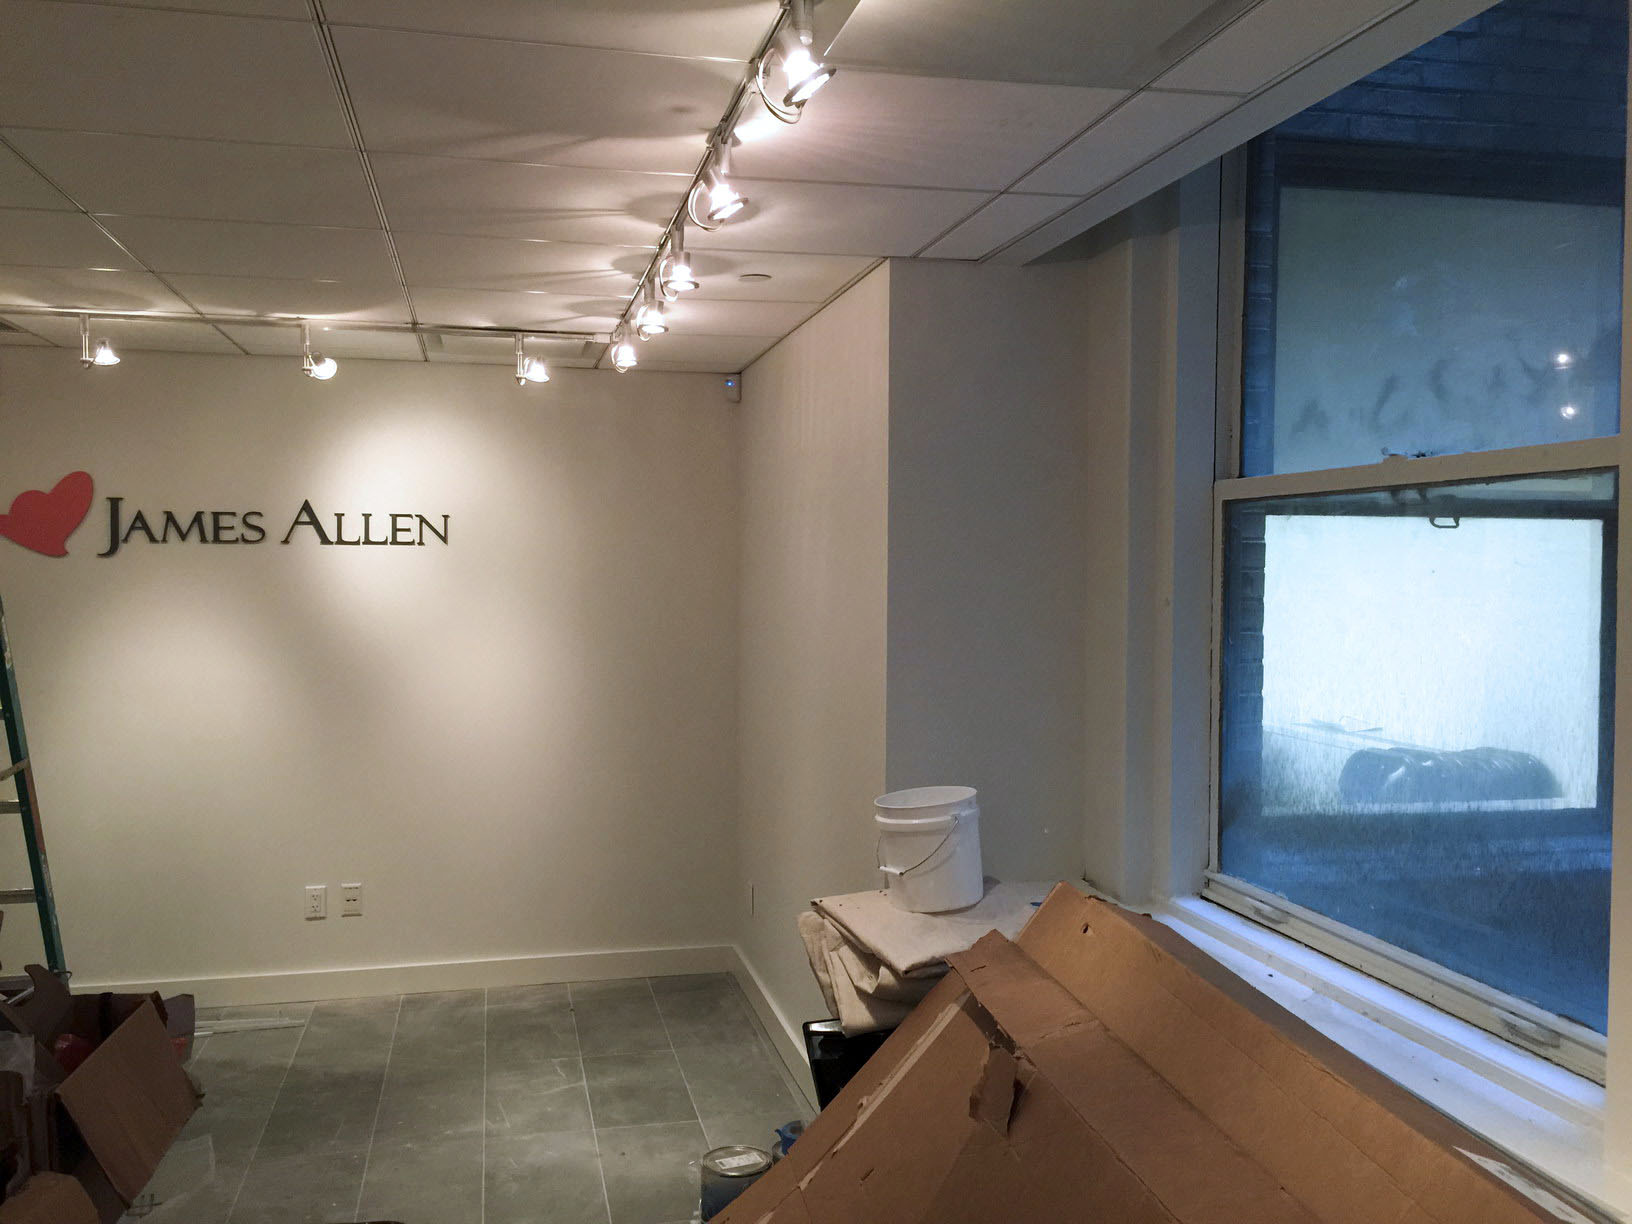 James Allen Jewelry Showroom Existing Conditions